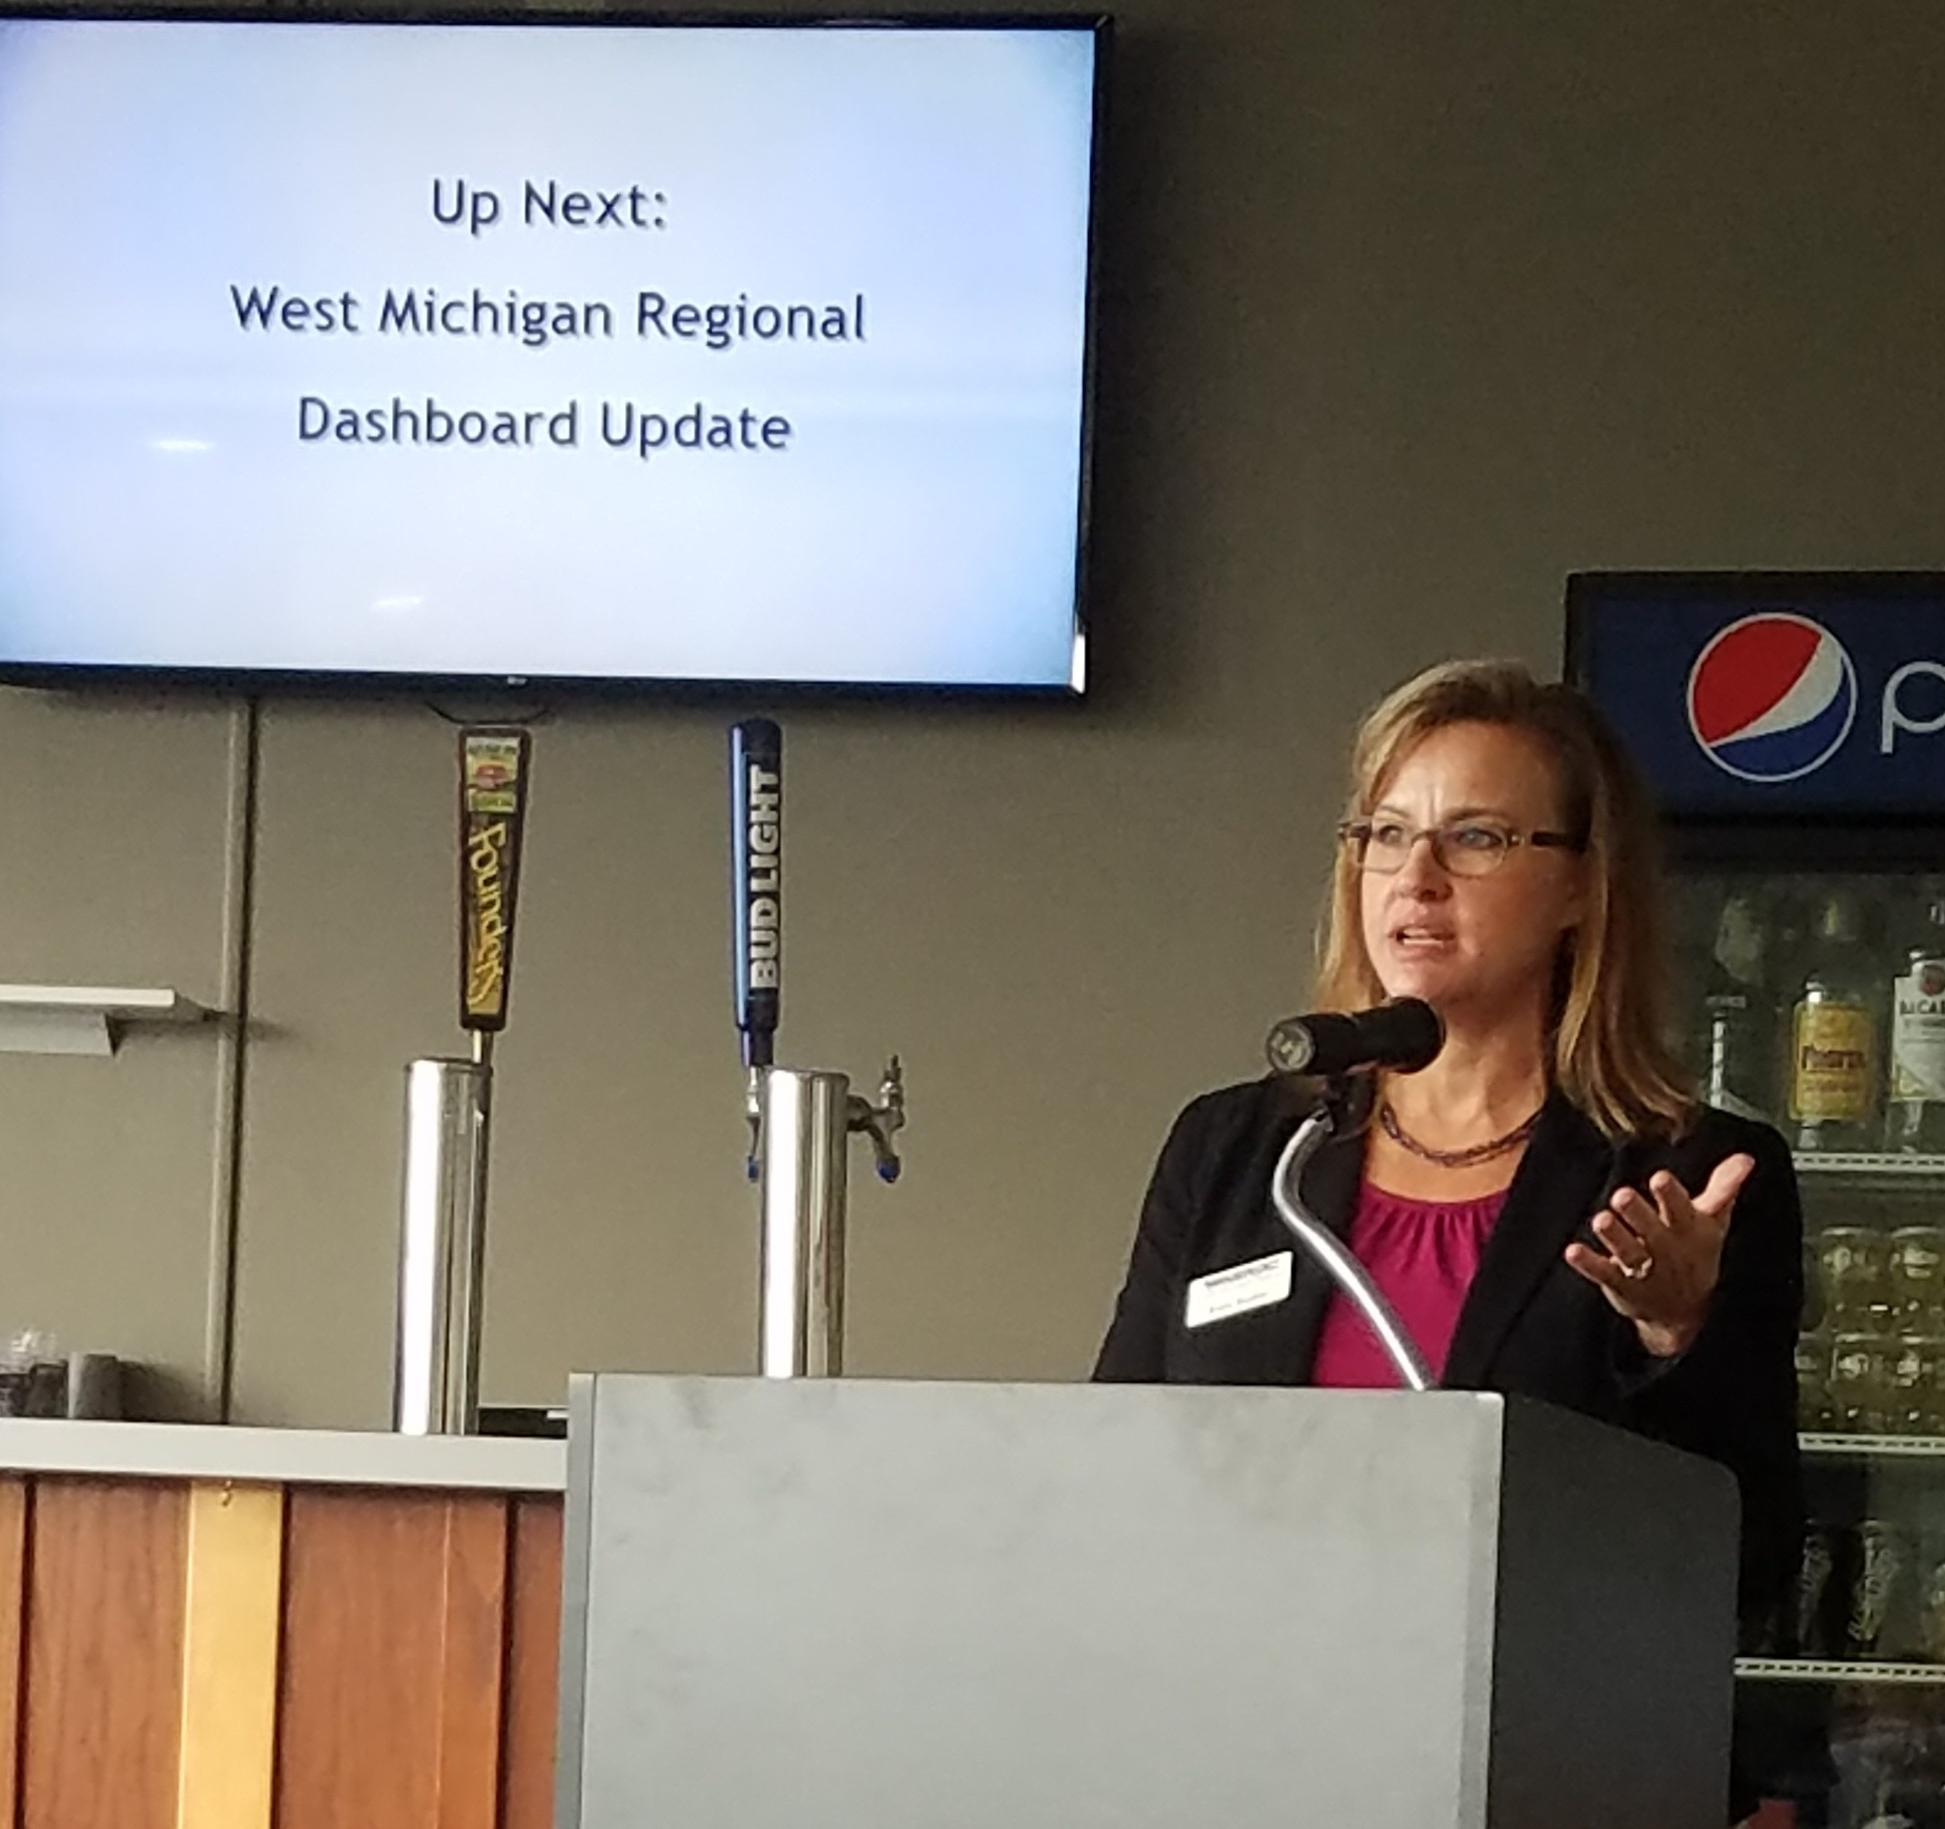 Chair of WMPA, Erin Kuhn, Executive Director of West Michigan Shoreline Regional Development Commission (WMSRDC)